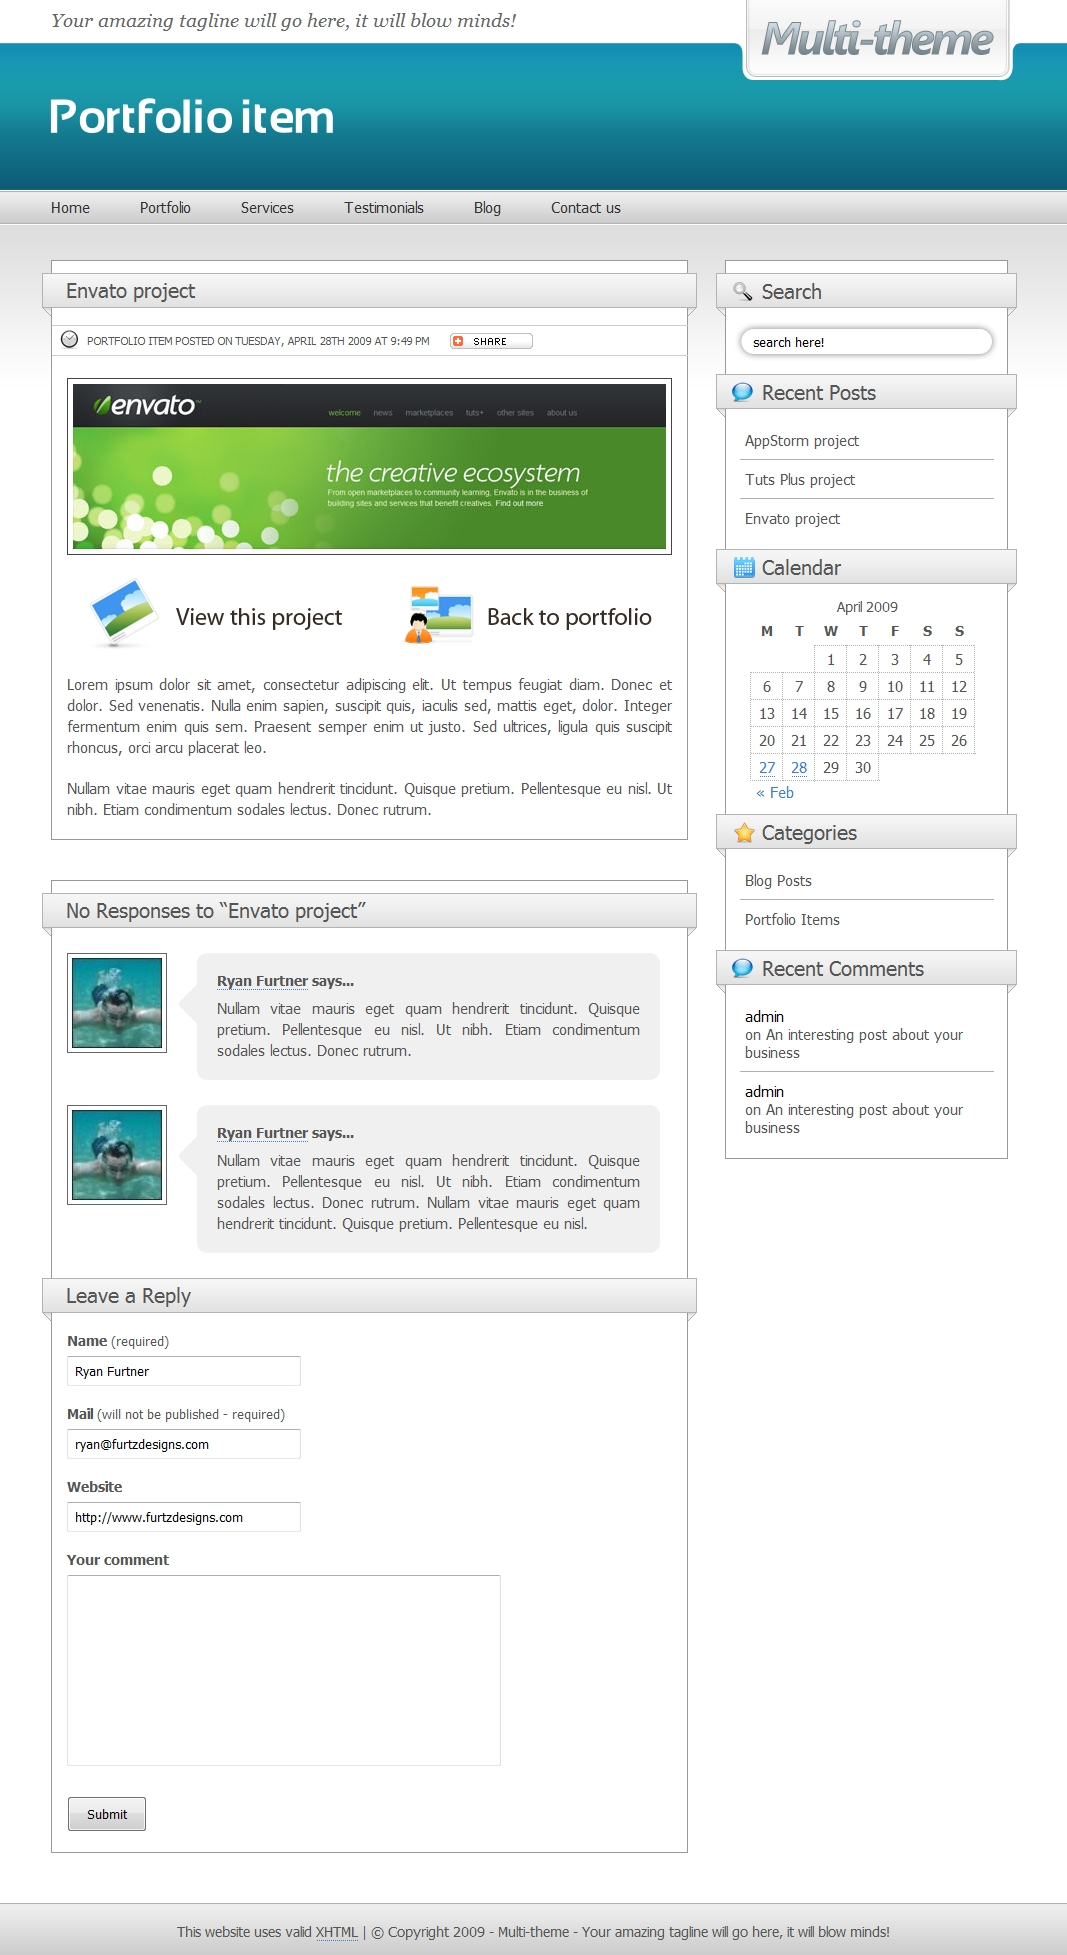 Multi-theme: 10 Colors - Business/Portfolio/Blog - This is a portfolio using the 'light blue' colour scheme showing an image aligned to the right within the post and the in-built 'view this project' section for portfolio items.